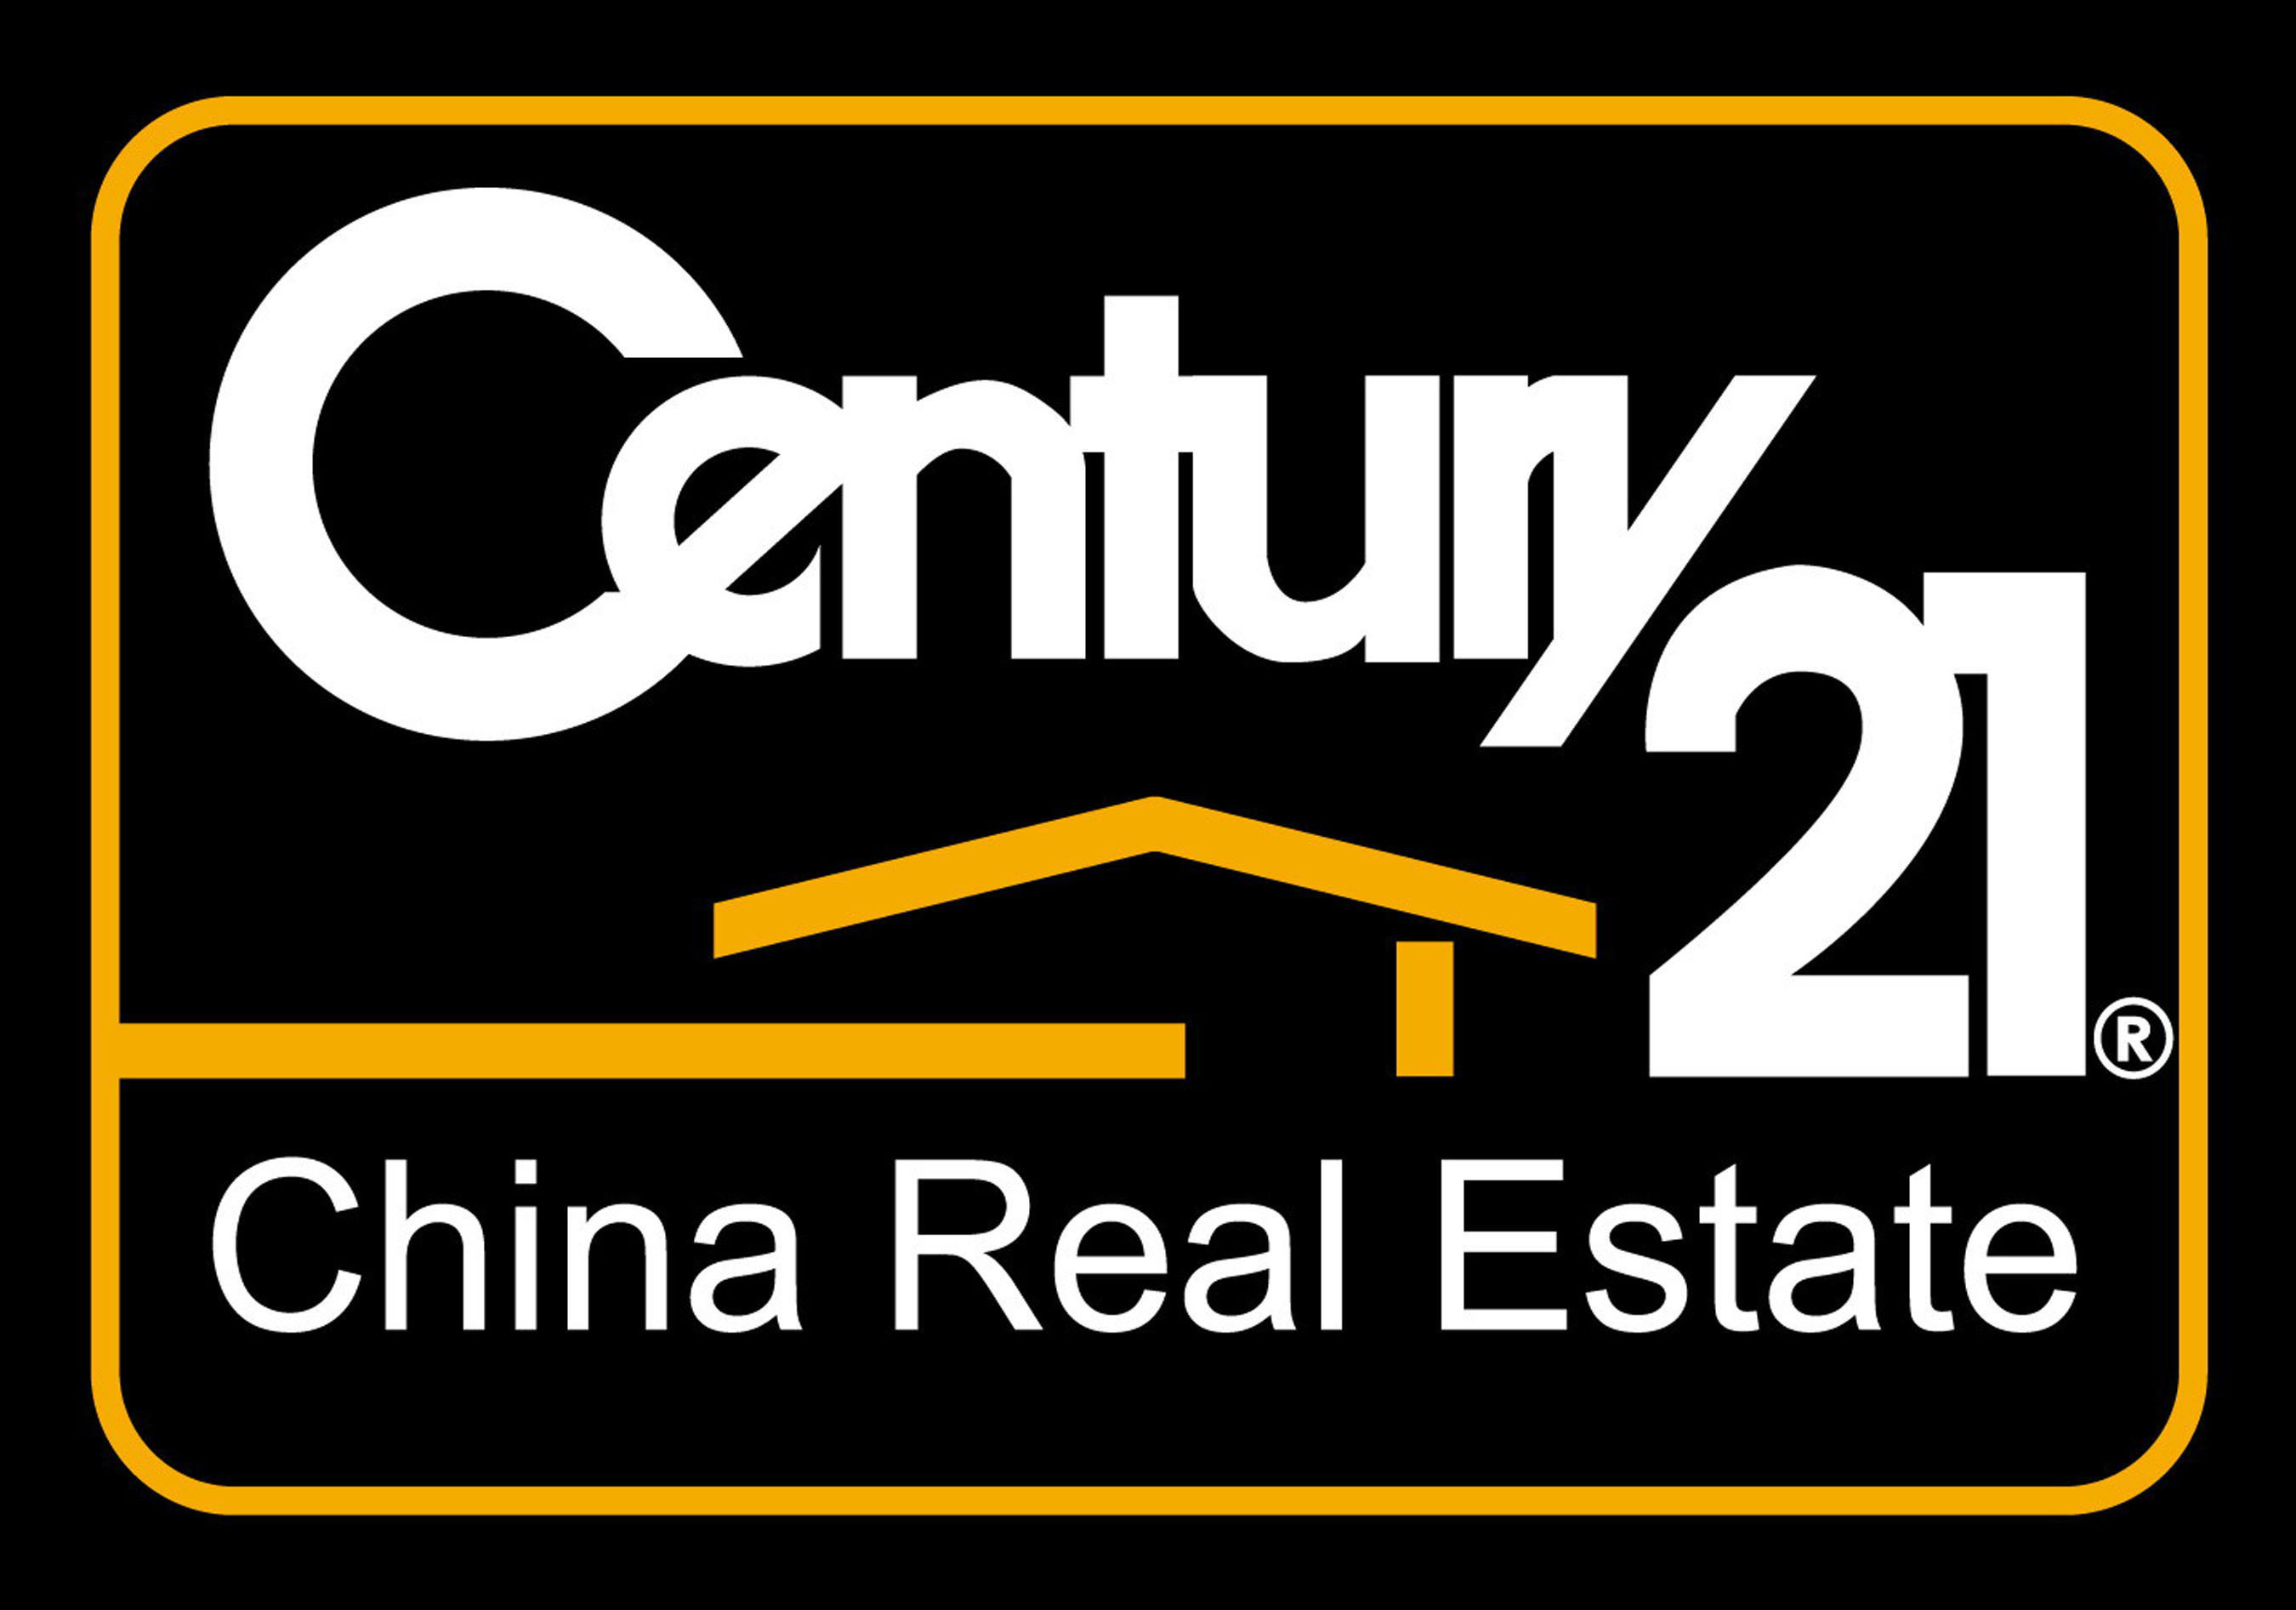 Century 21 China Real Estate Signs Agreements With Yooli Yinhu To Provide Online Financial Services